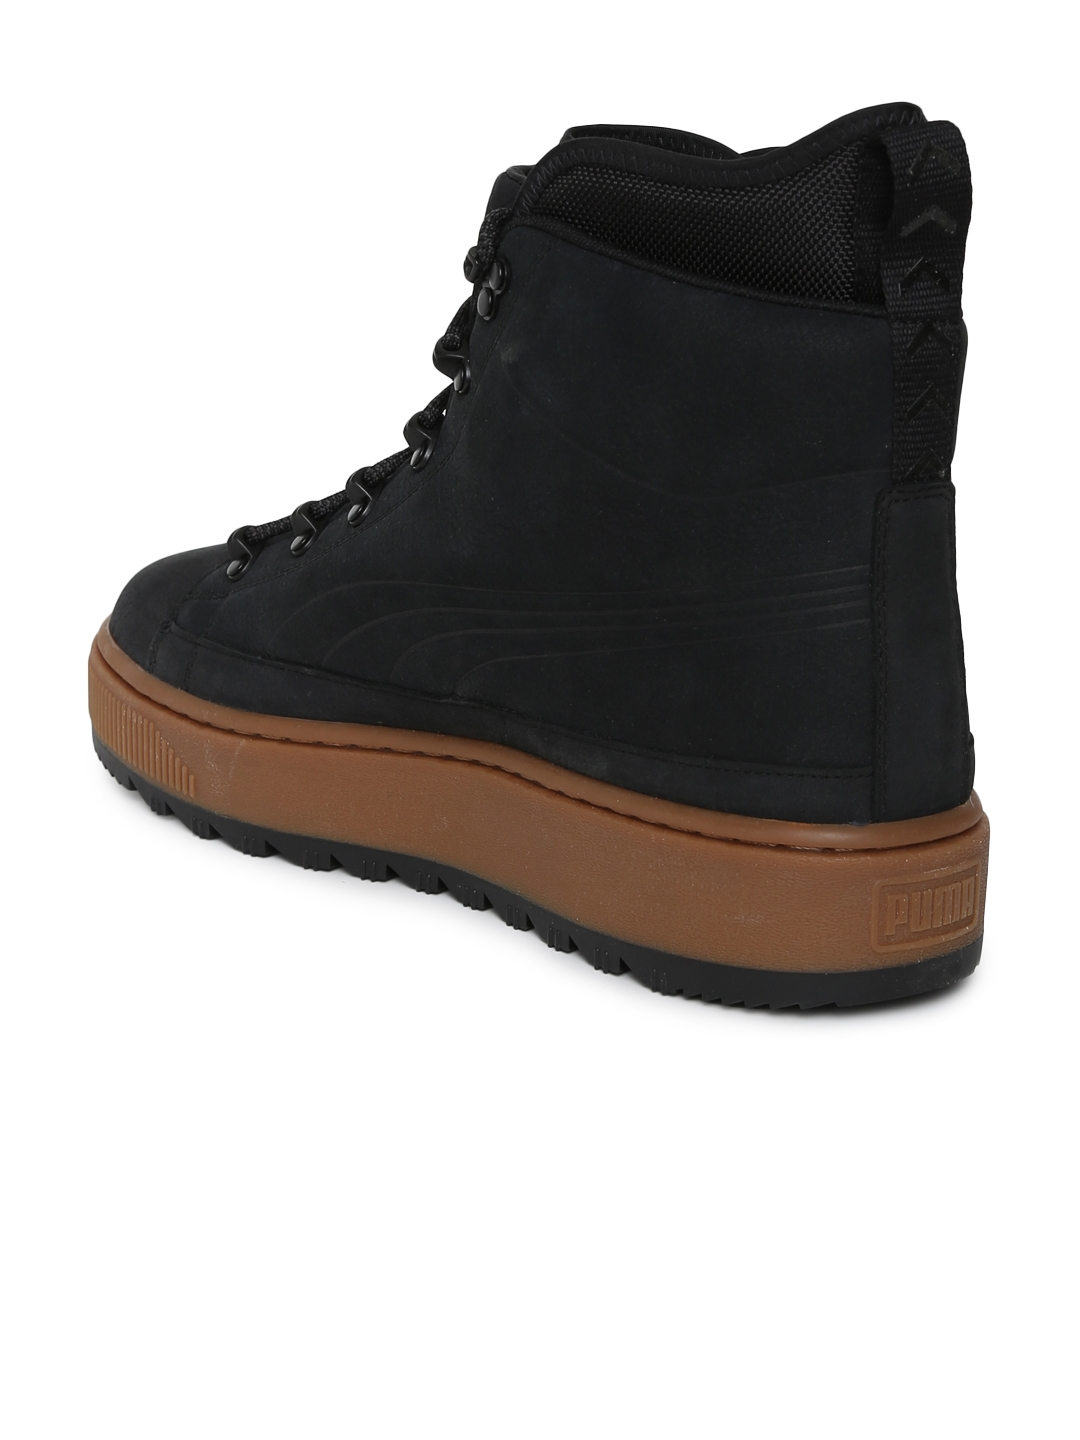 Buy Puma Unisex Black Solid Leather High Top The Ren NBK Flat Boots ... 664965542c2